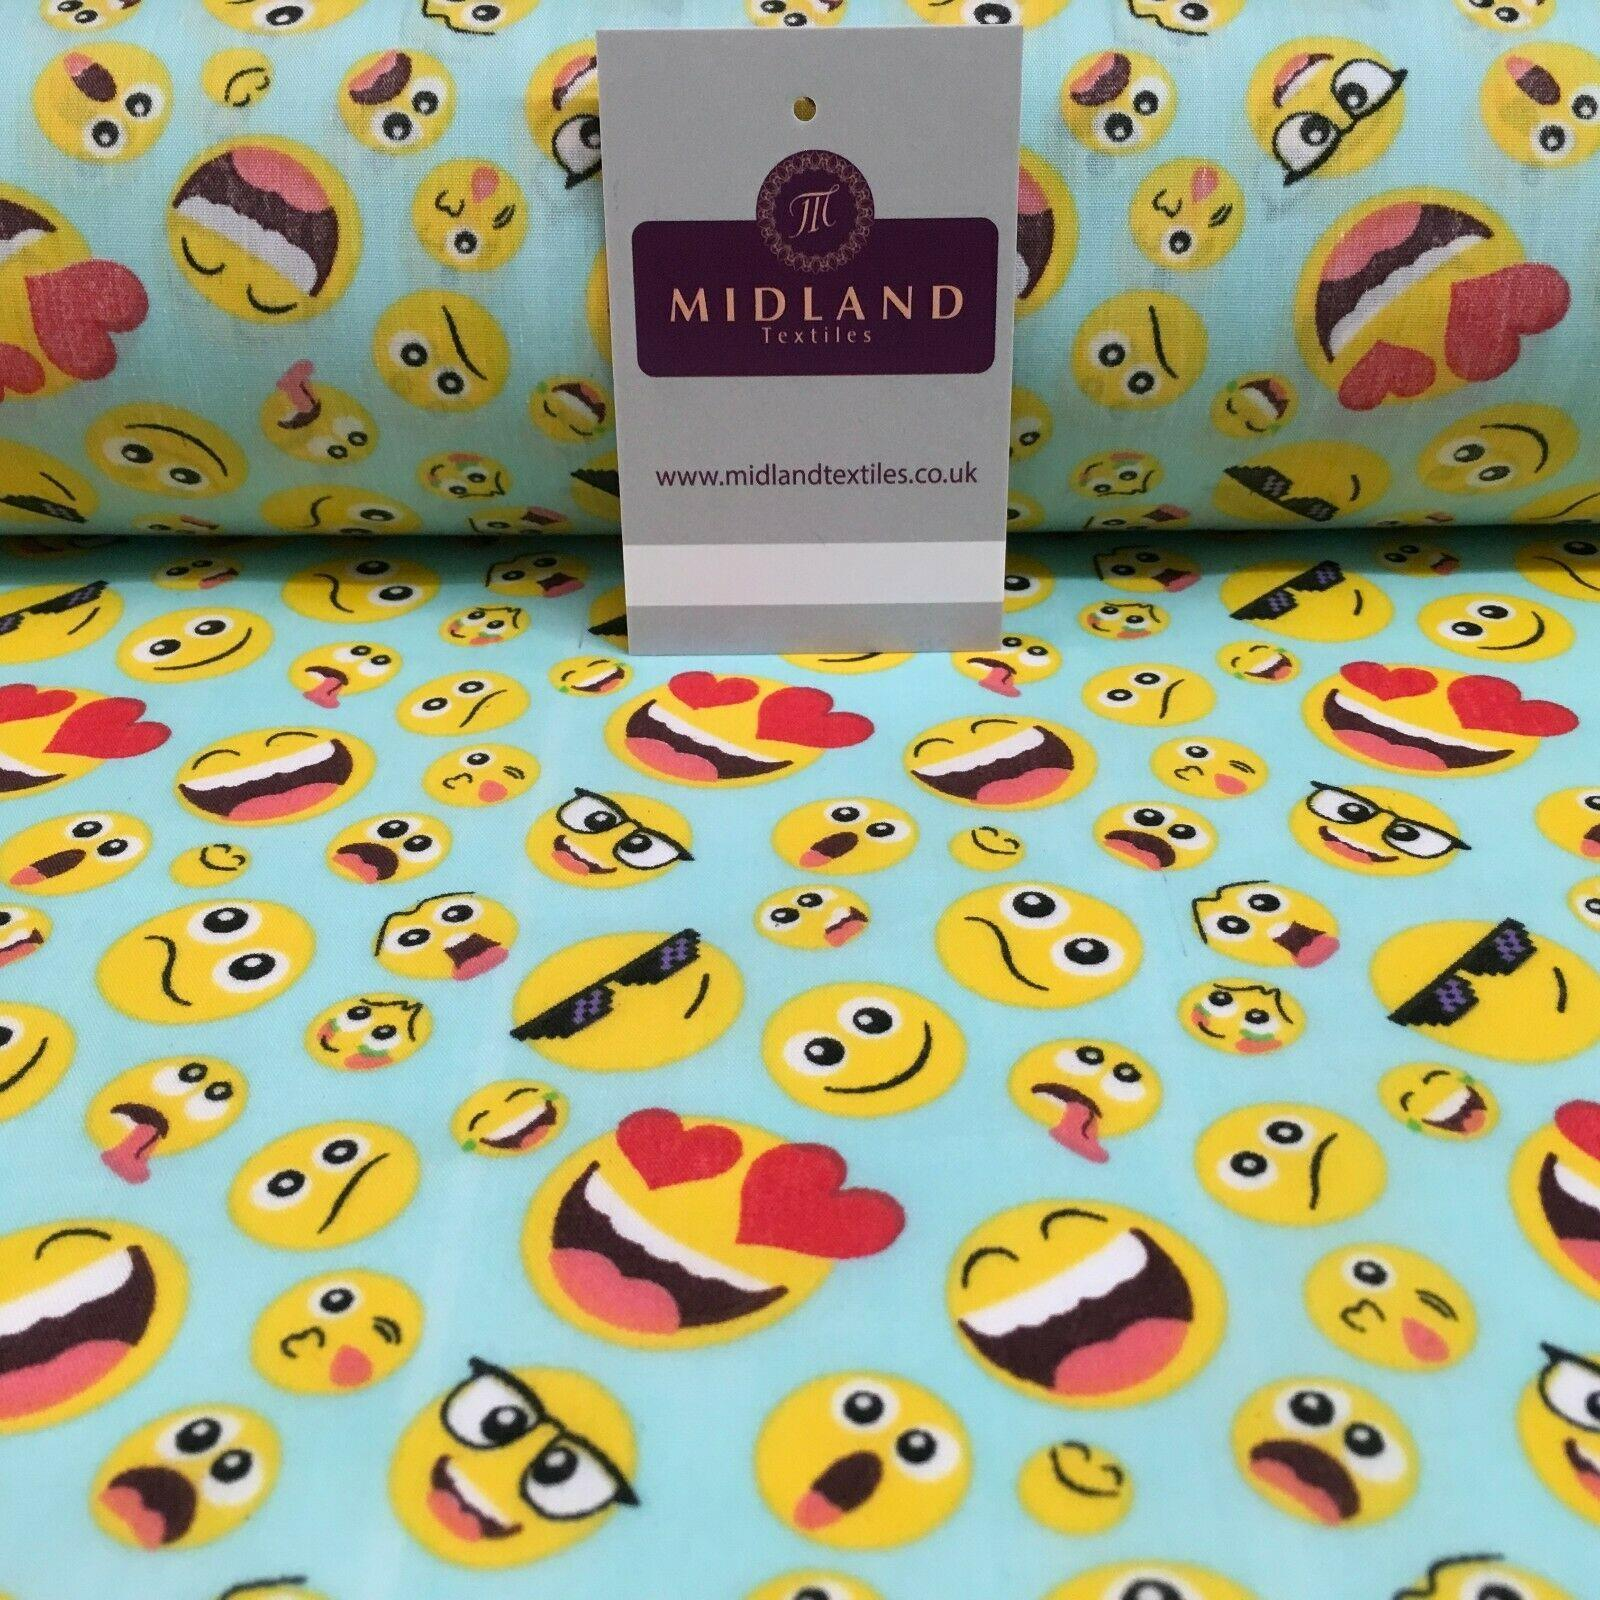 Novelty Emoji Smiley, Laughing, Love Face Polycotton Fabric 110 cm Wide MH1165